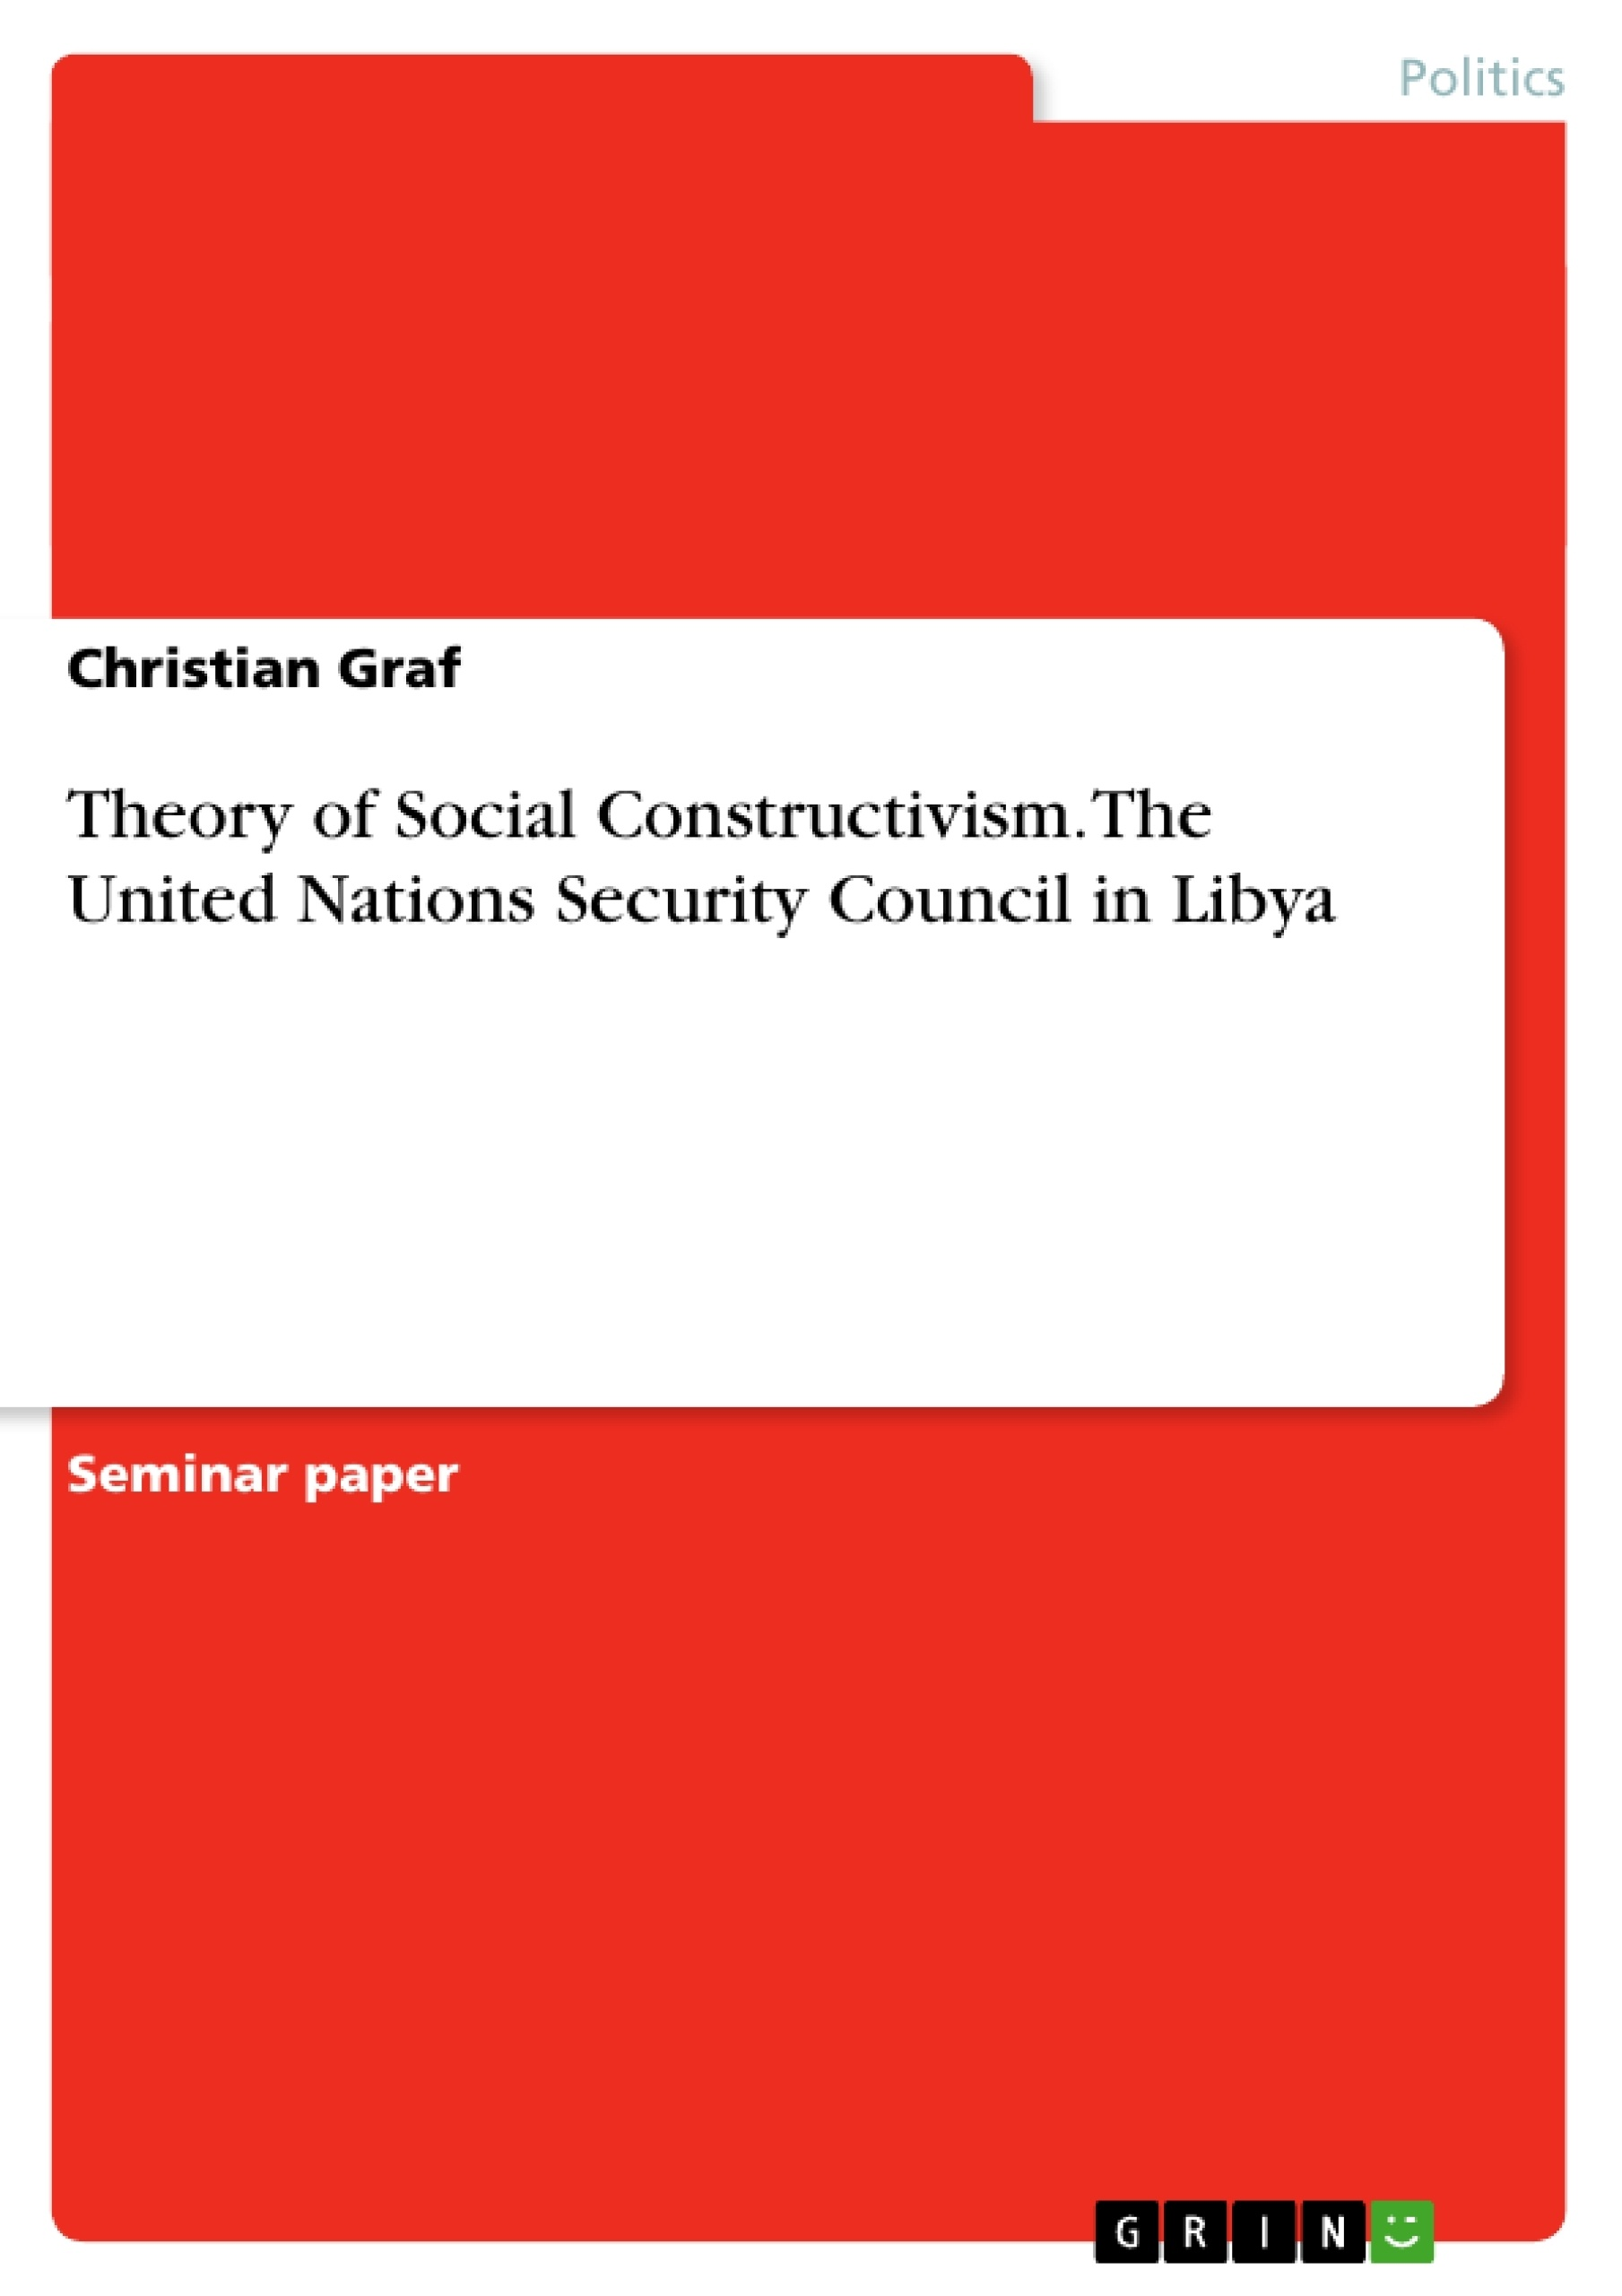 Title: Theory of Social Constructivism. The United Nations Security Council in Libya